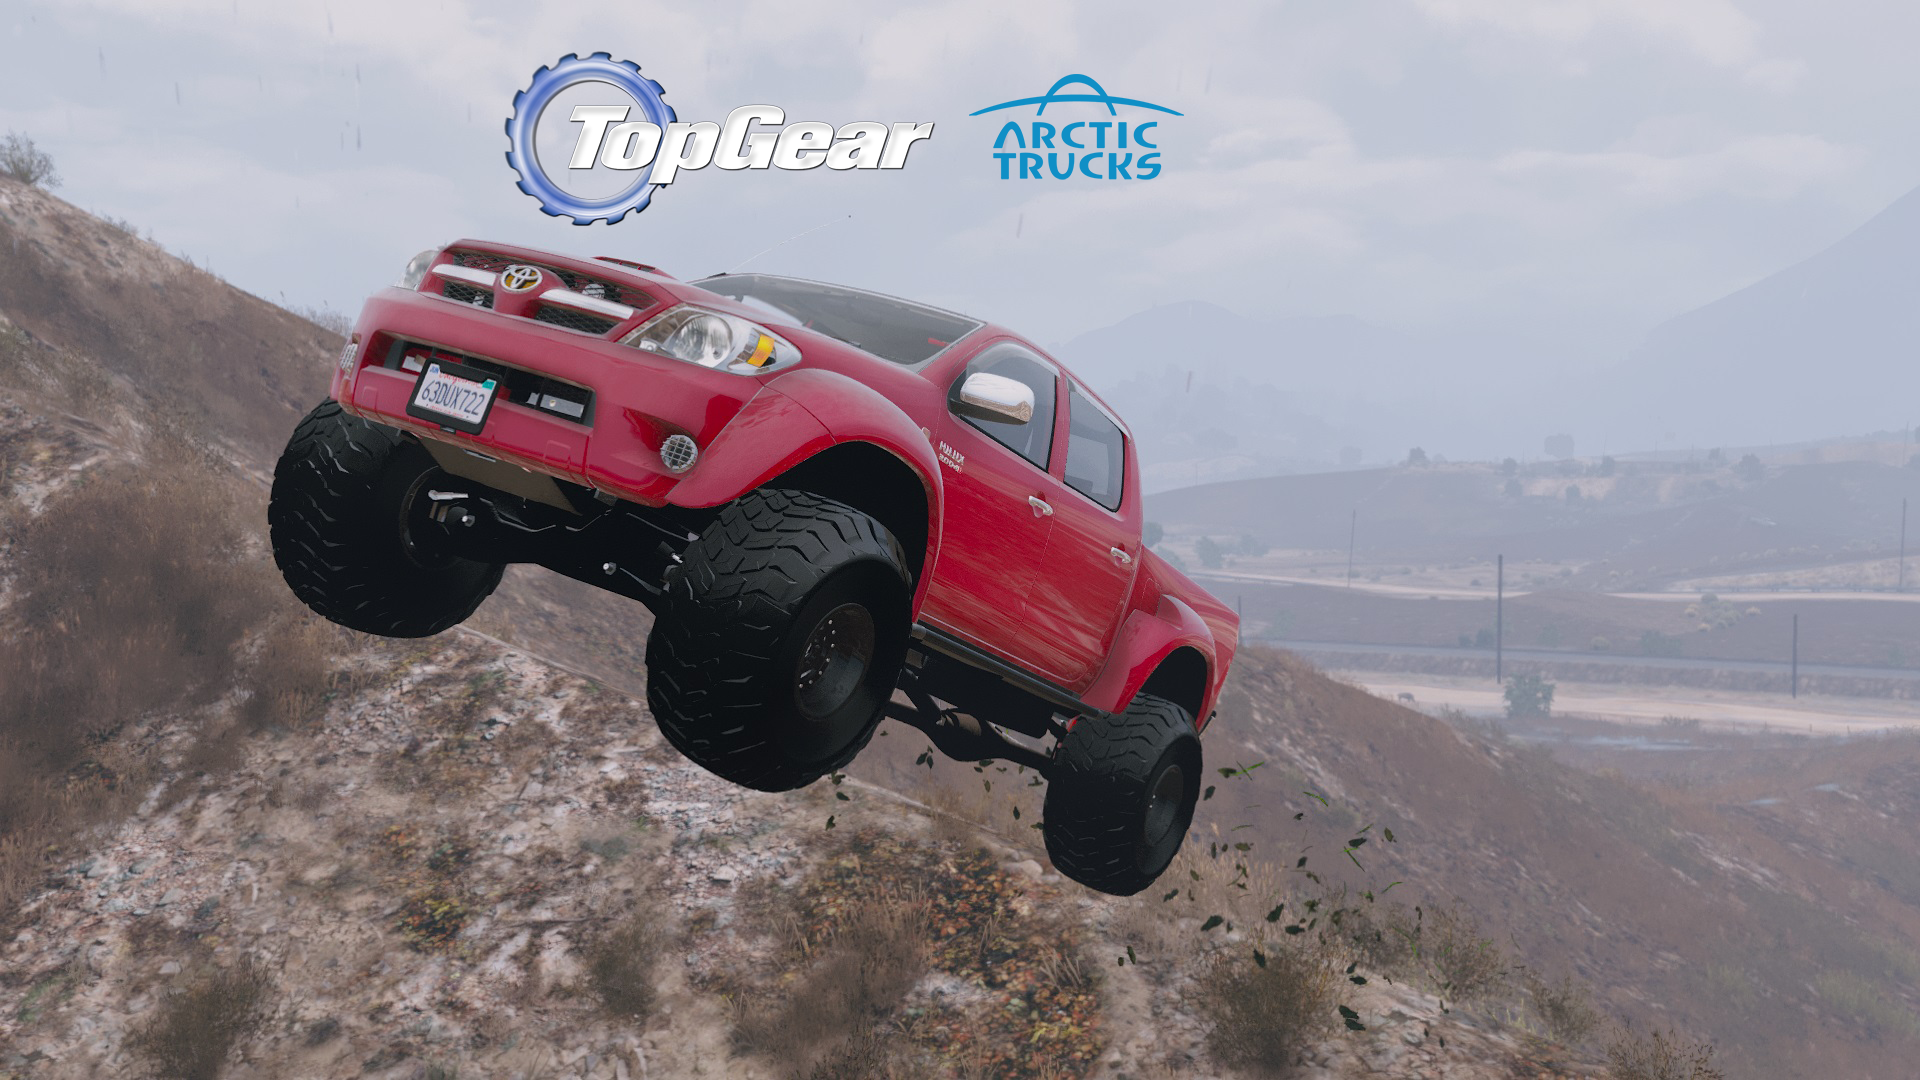 2007 Top Gear Toyota Hilux At38 Arctic Trucks Add On